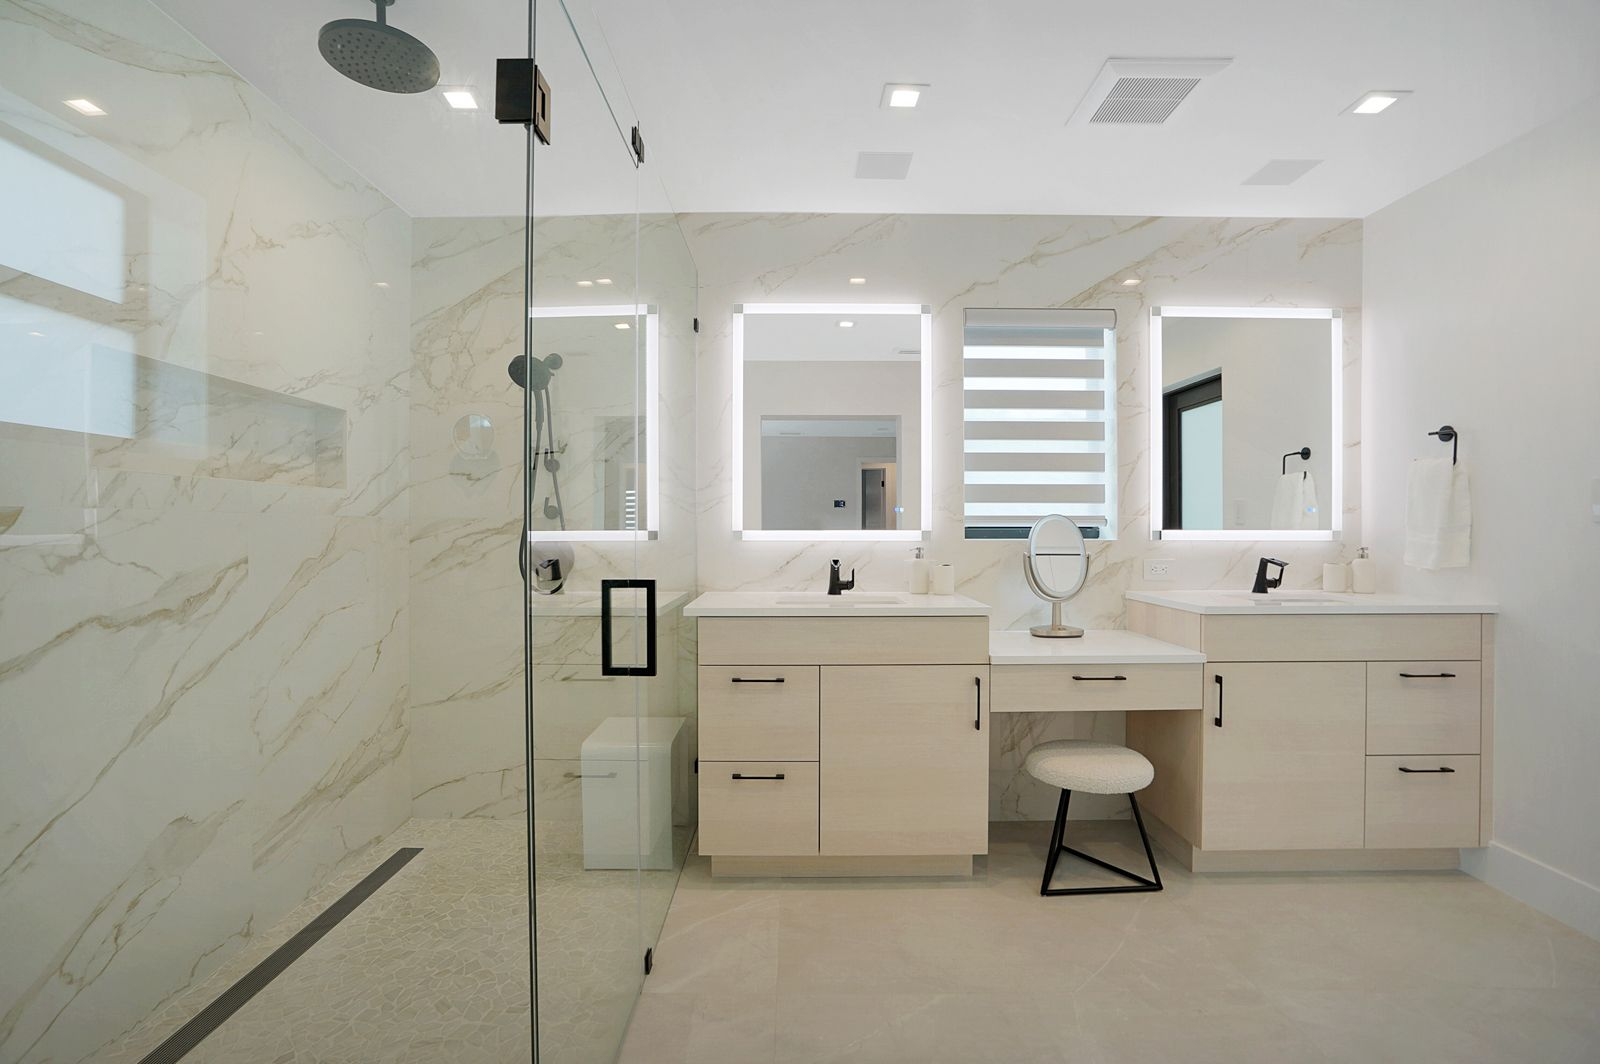 Bathroom Remodeling in Pinecrest, Palmetto Bay, Coral Gables, Ocean Reef, Key Largo, and Miami Beach